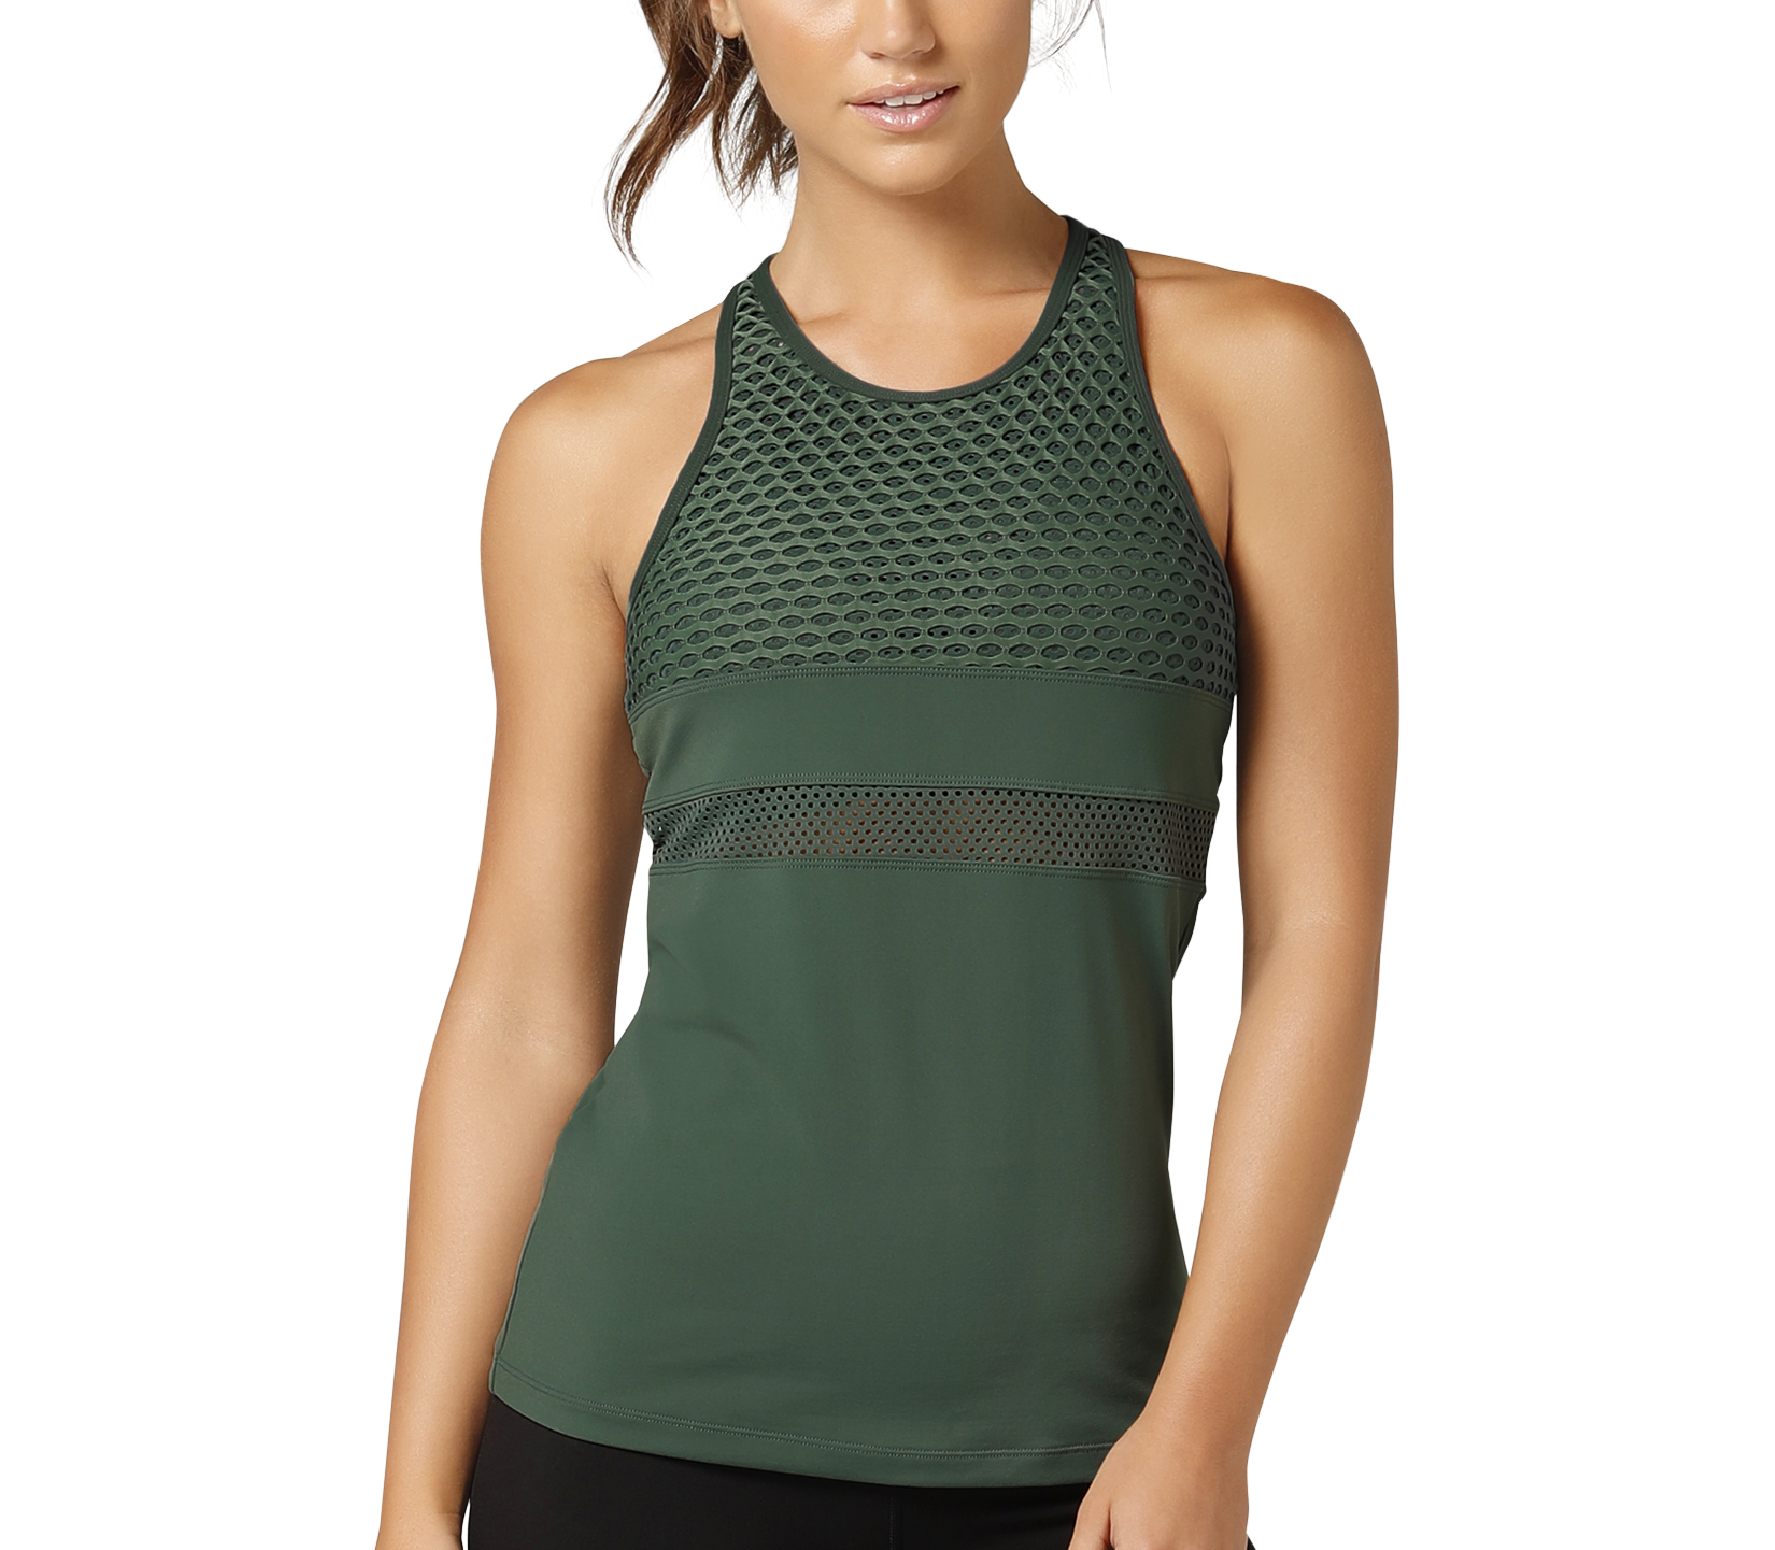 Lorna Jane - Ignition Excel women's training tank top top (green)